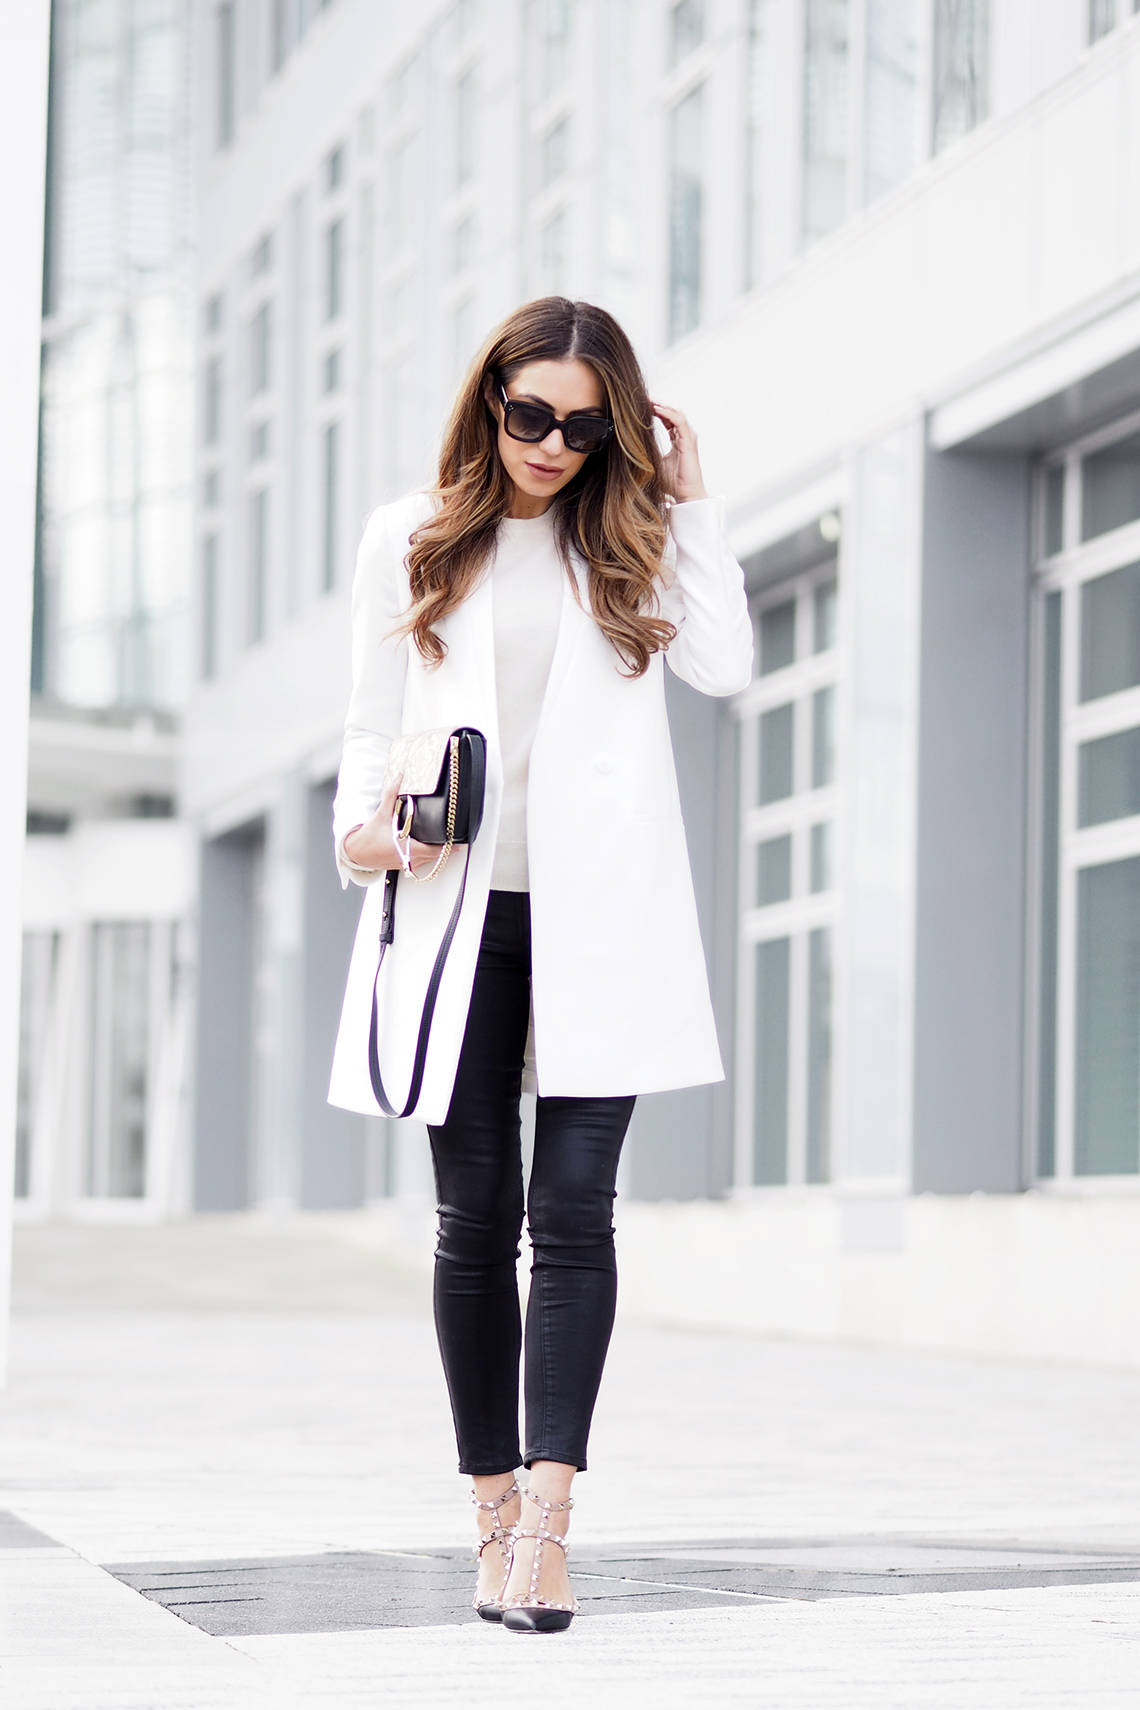 Lydia Lise Millen is making a fashion statement in black and white in this daring block monochrome outfit! Wear a pristine white coat such as this one from Jigsaw with black jeans to recreate this look. Jacket: Jigsaw, Cashmere Knit: John Lewis, Bag: Chloe, Jeans: Paige Denim, Shooes: Valentino.